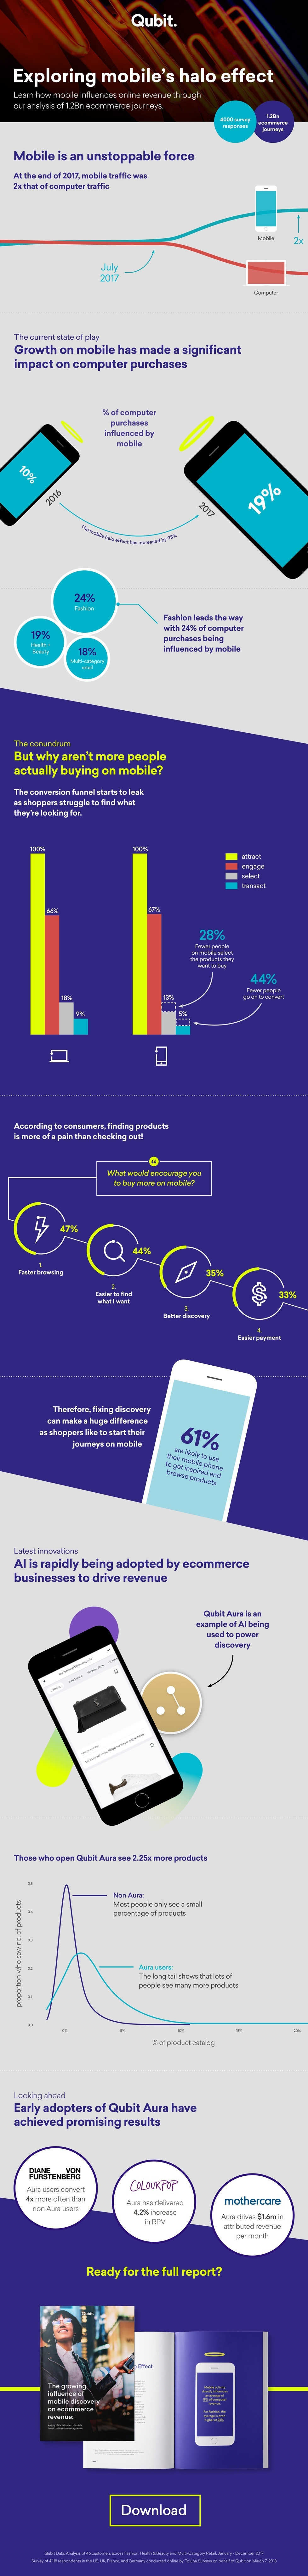 [Download report] The growing influence of mobile discovery on ecommerce revenue